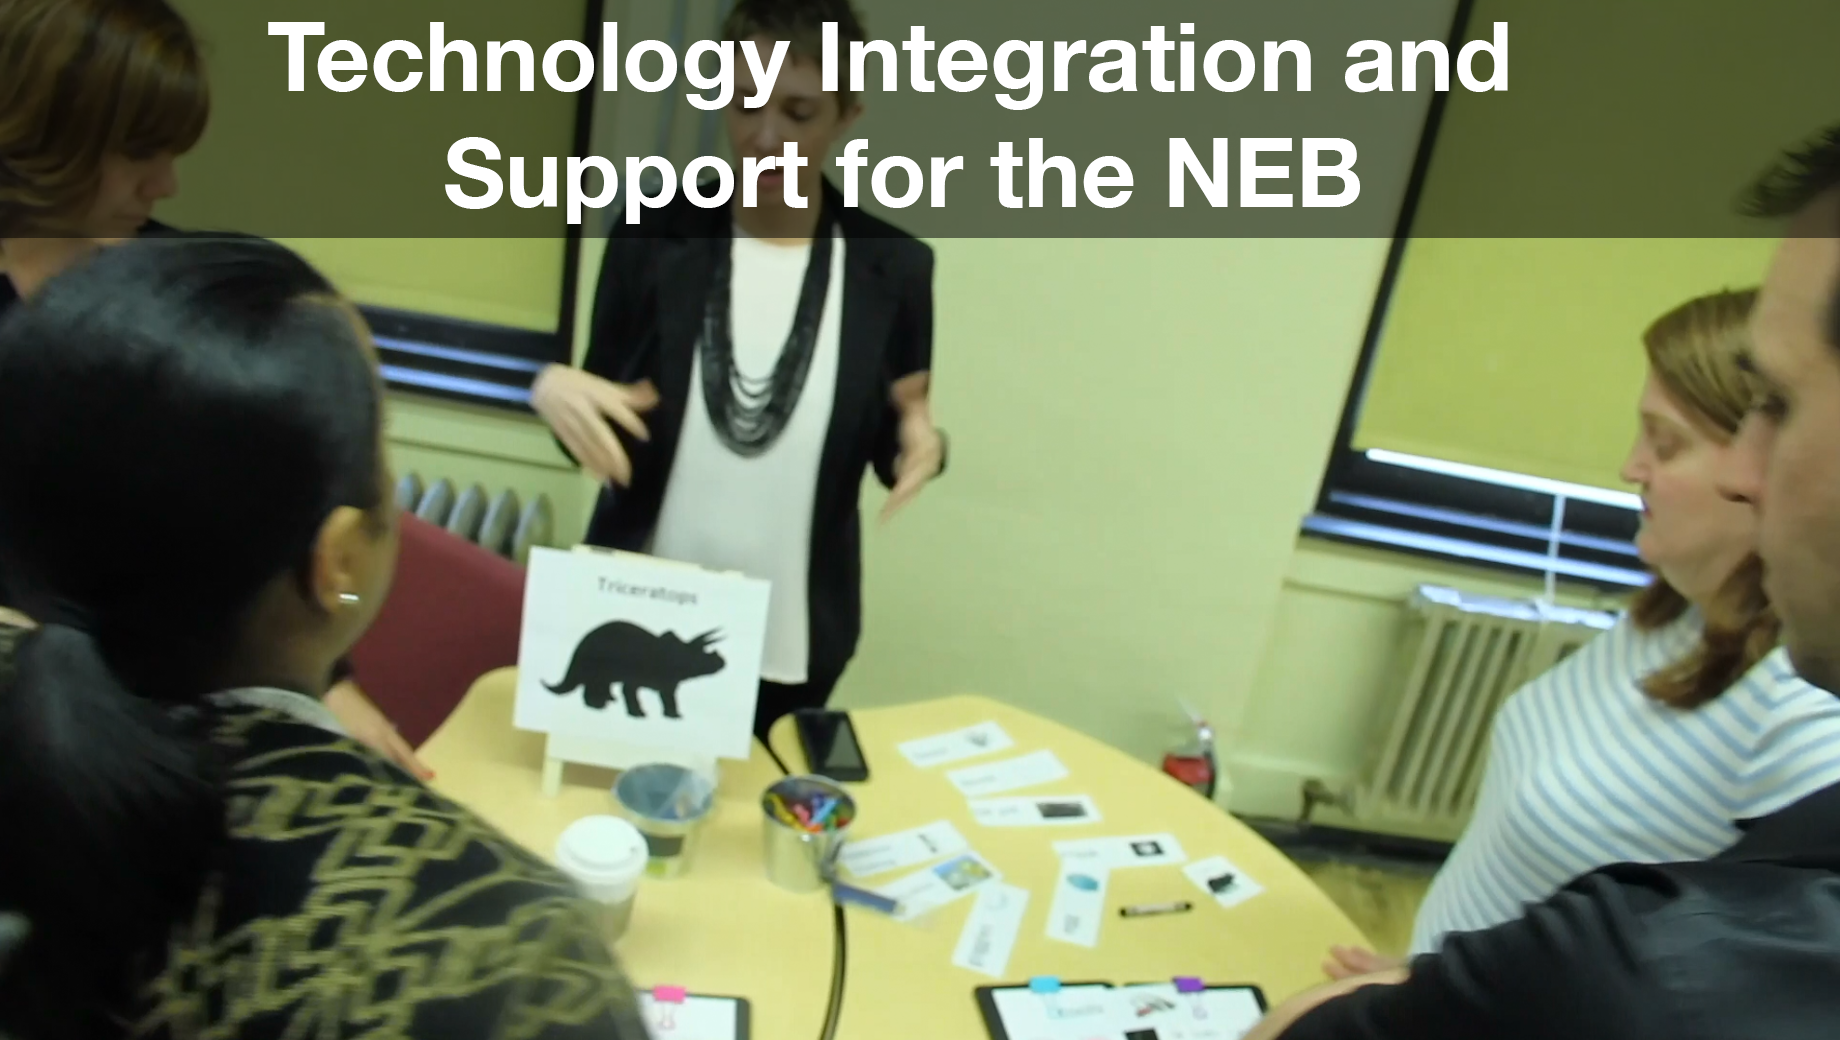 Technology Integration and Support for the NEB